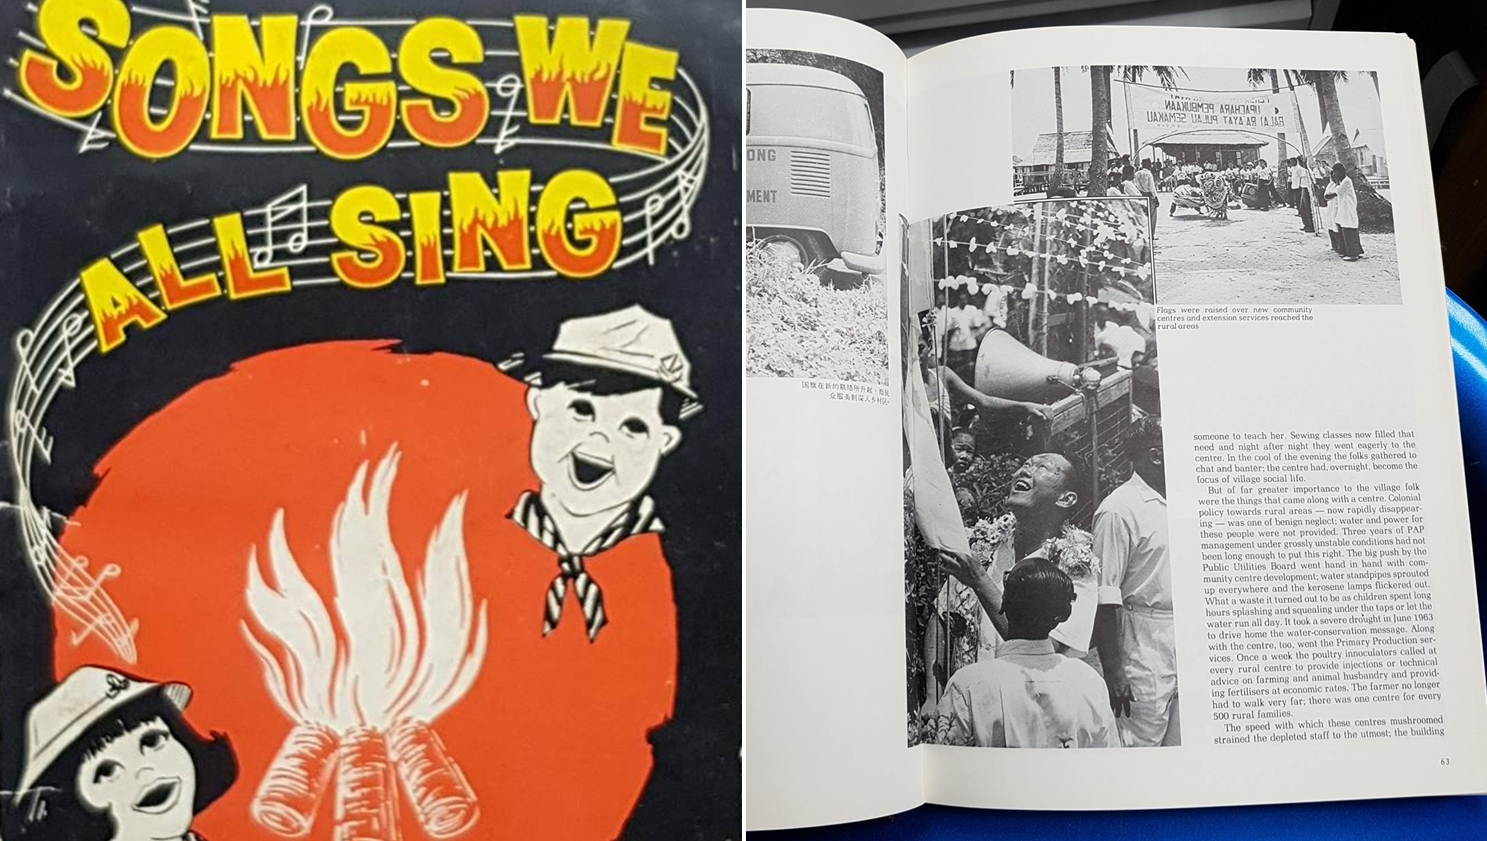 Secondhand Bookstores -collage of book on camp fire songs and Singapore's history